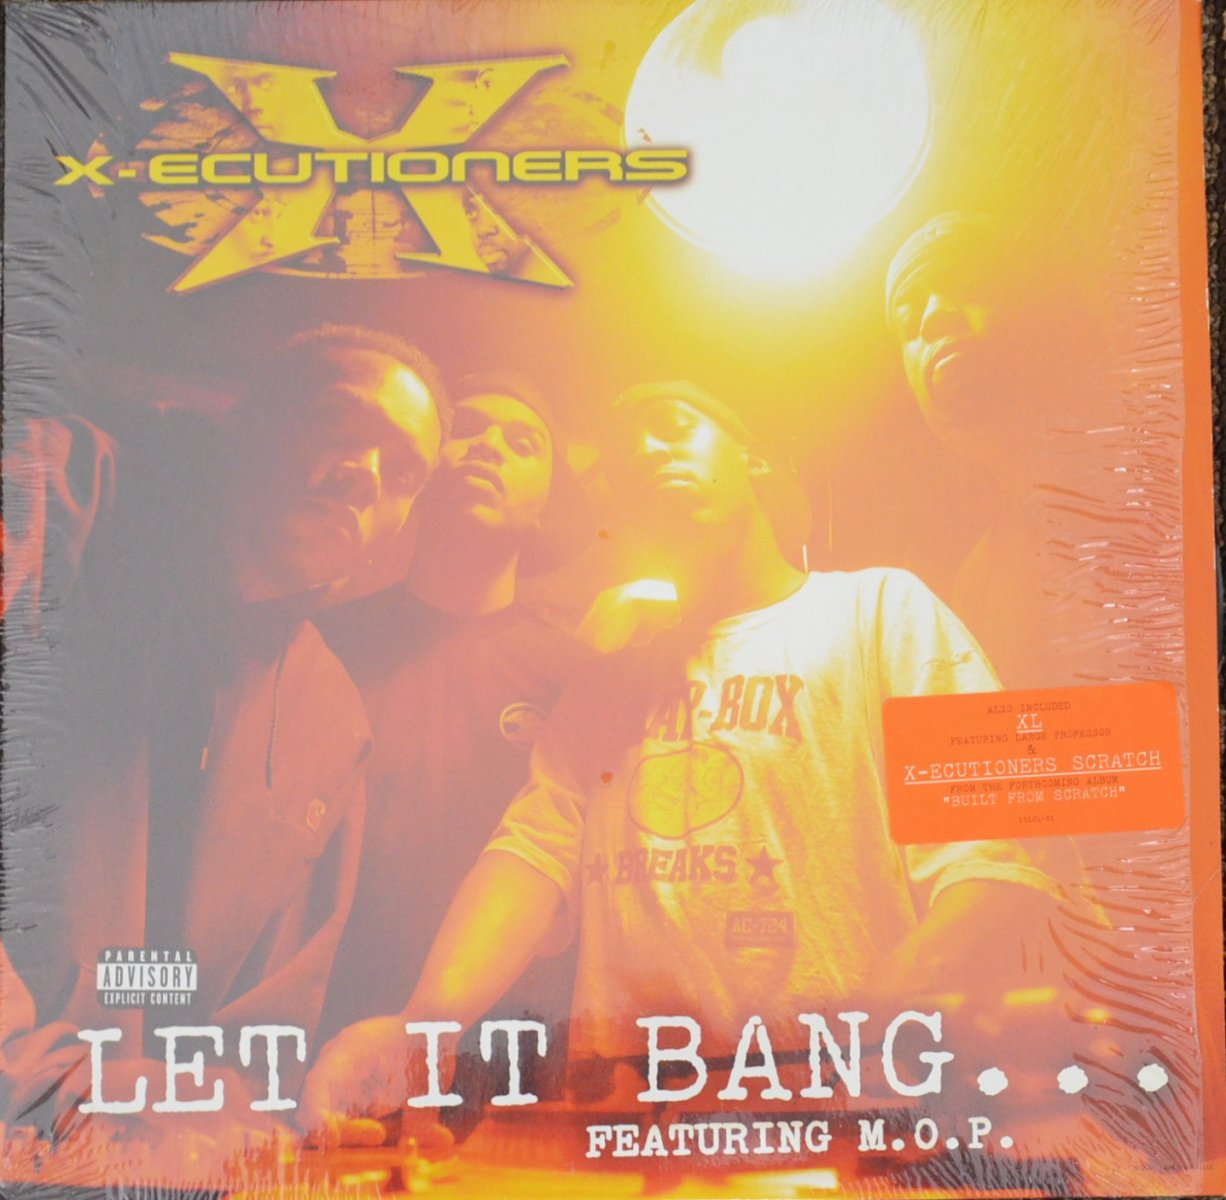 THE X-ECUTIONERS FEATURING M.O.P. ‎/ LET IT BANG / XL (PROD BY LARGE PROFESSOR) (12